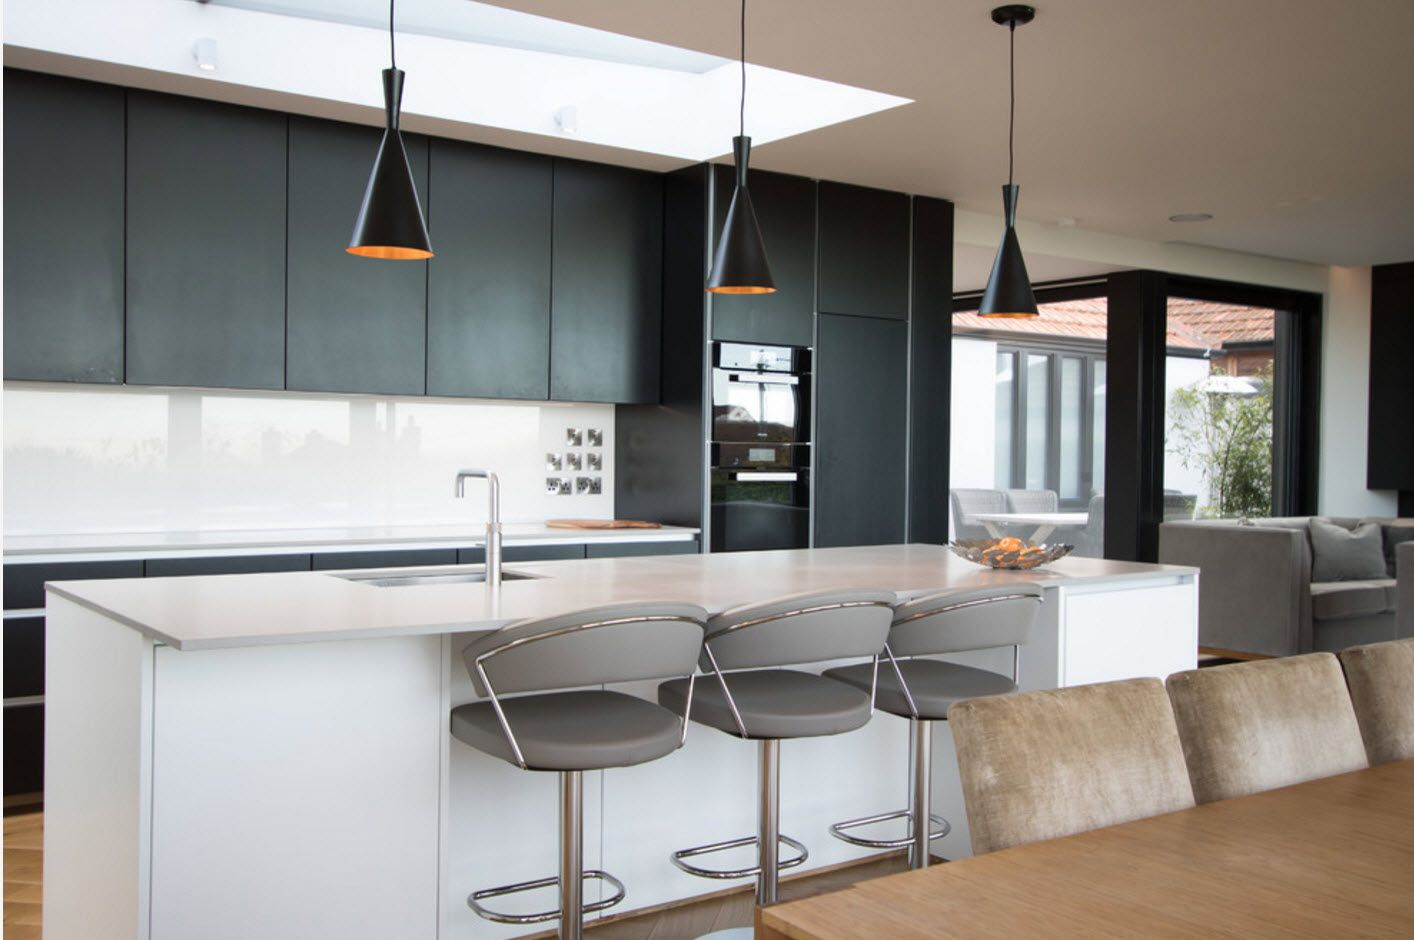 Dark and gray intermixing of colors and styles in the modern kitchen